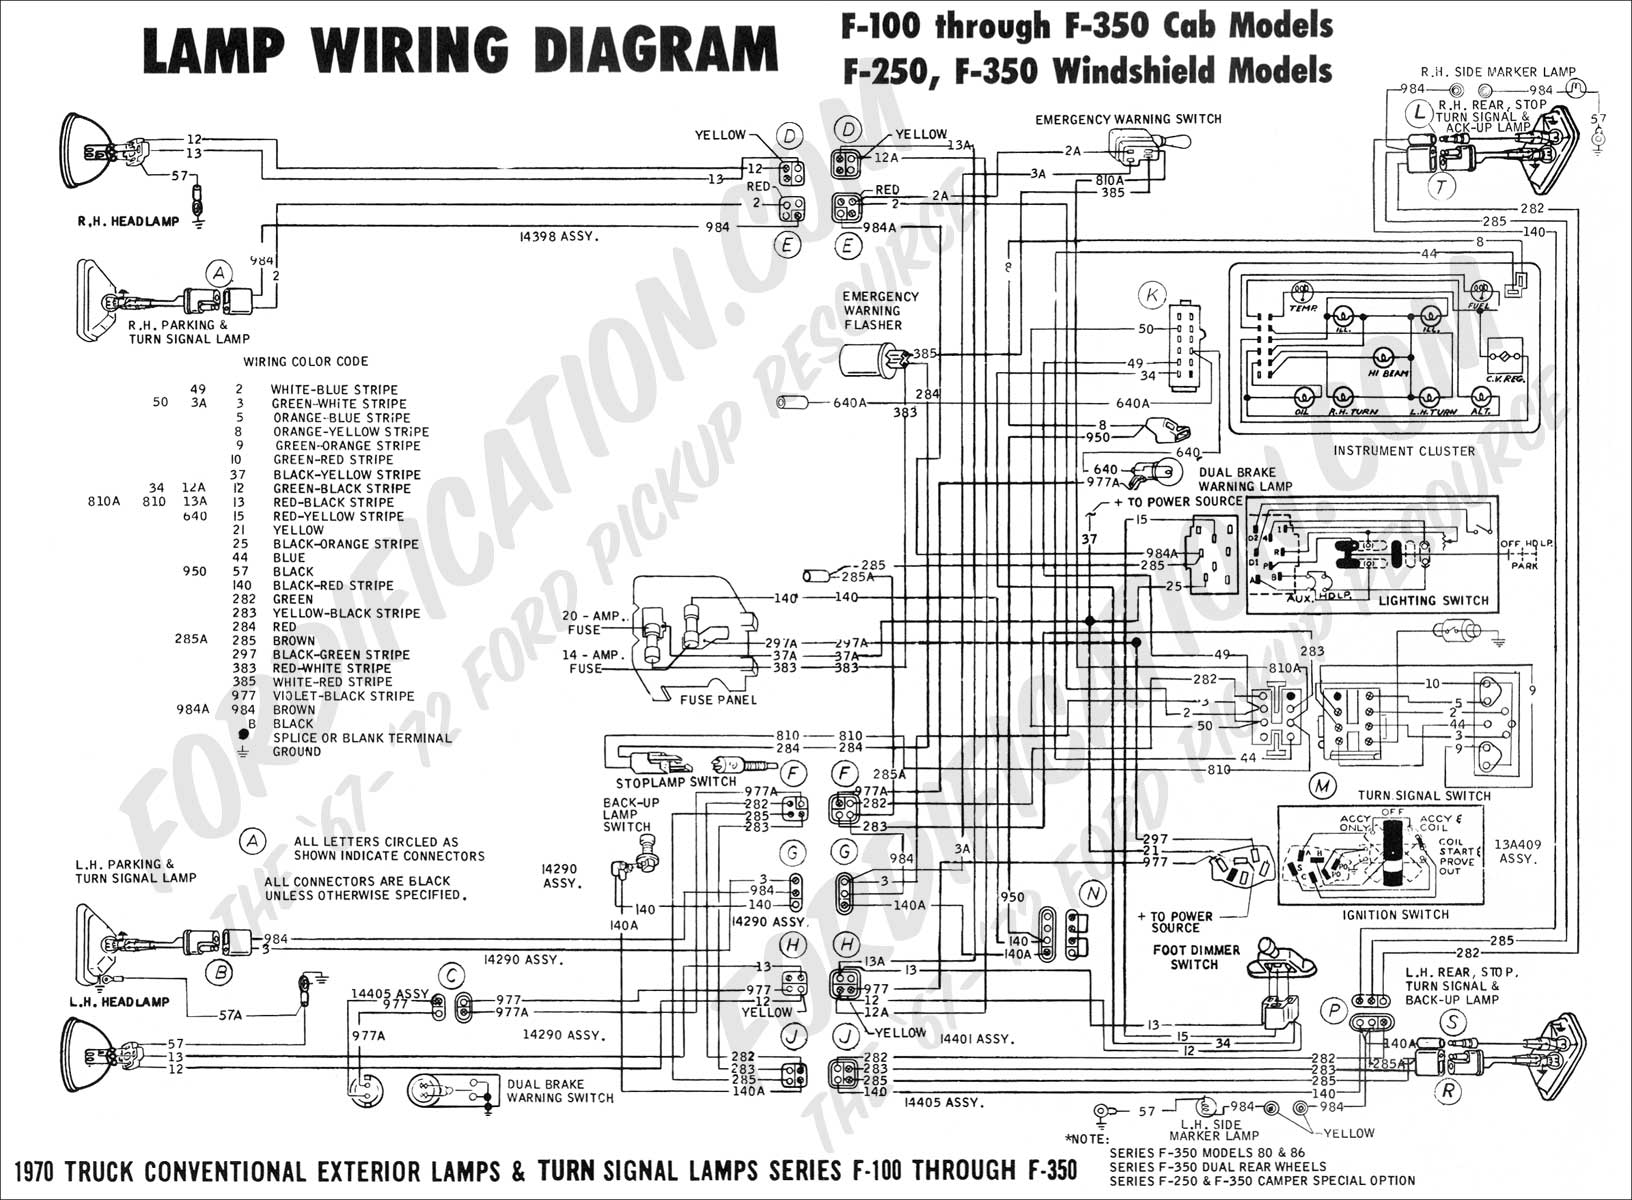 1967 ford f250 wiring diagram wiring diagram 1965 mustang wiring diagram 1967 ford pickup wiring diagram #9